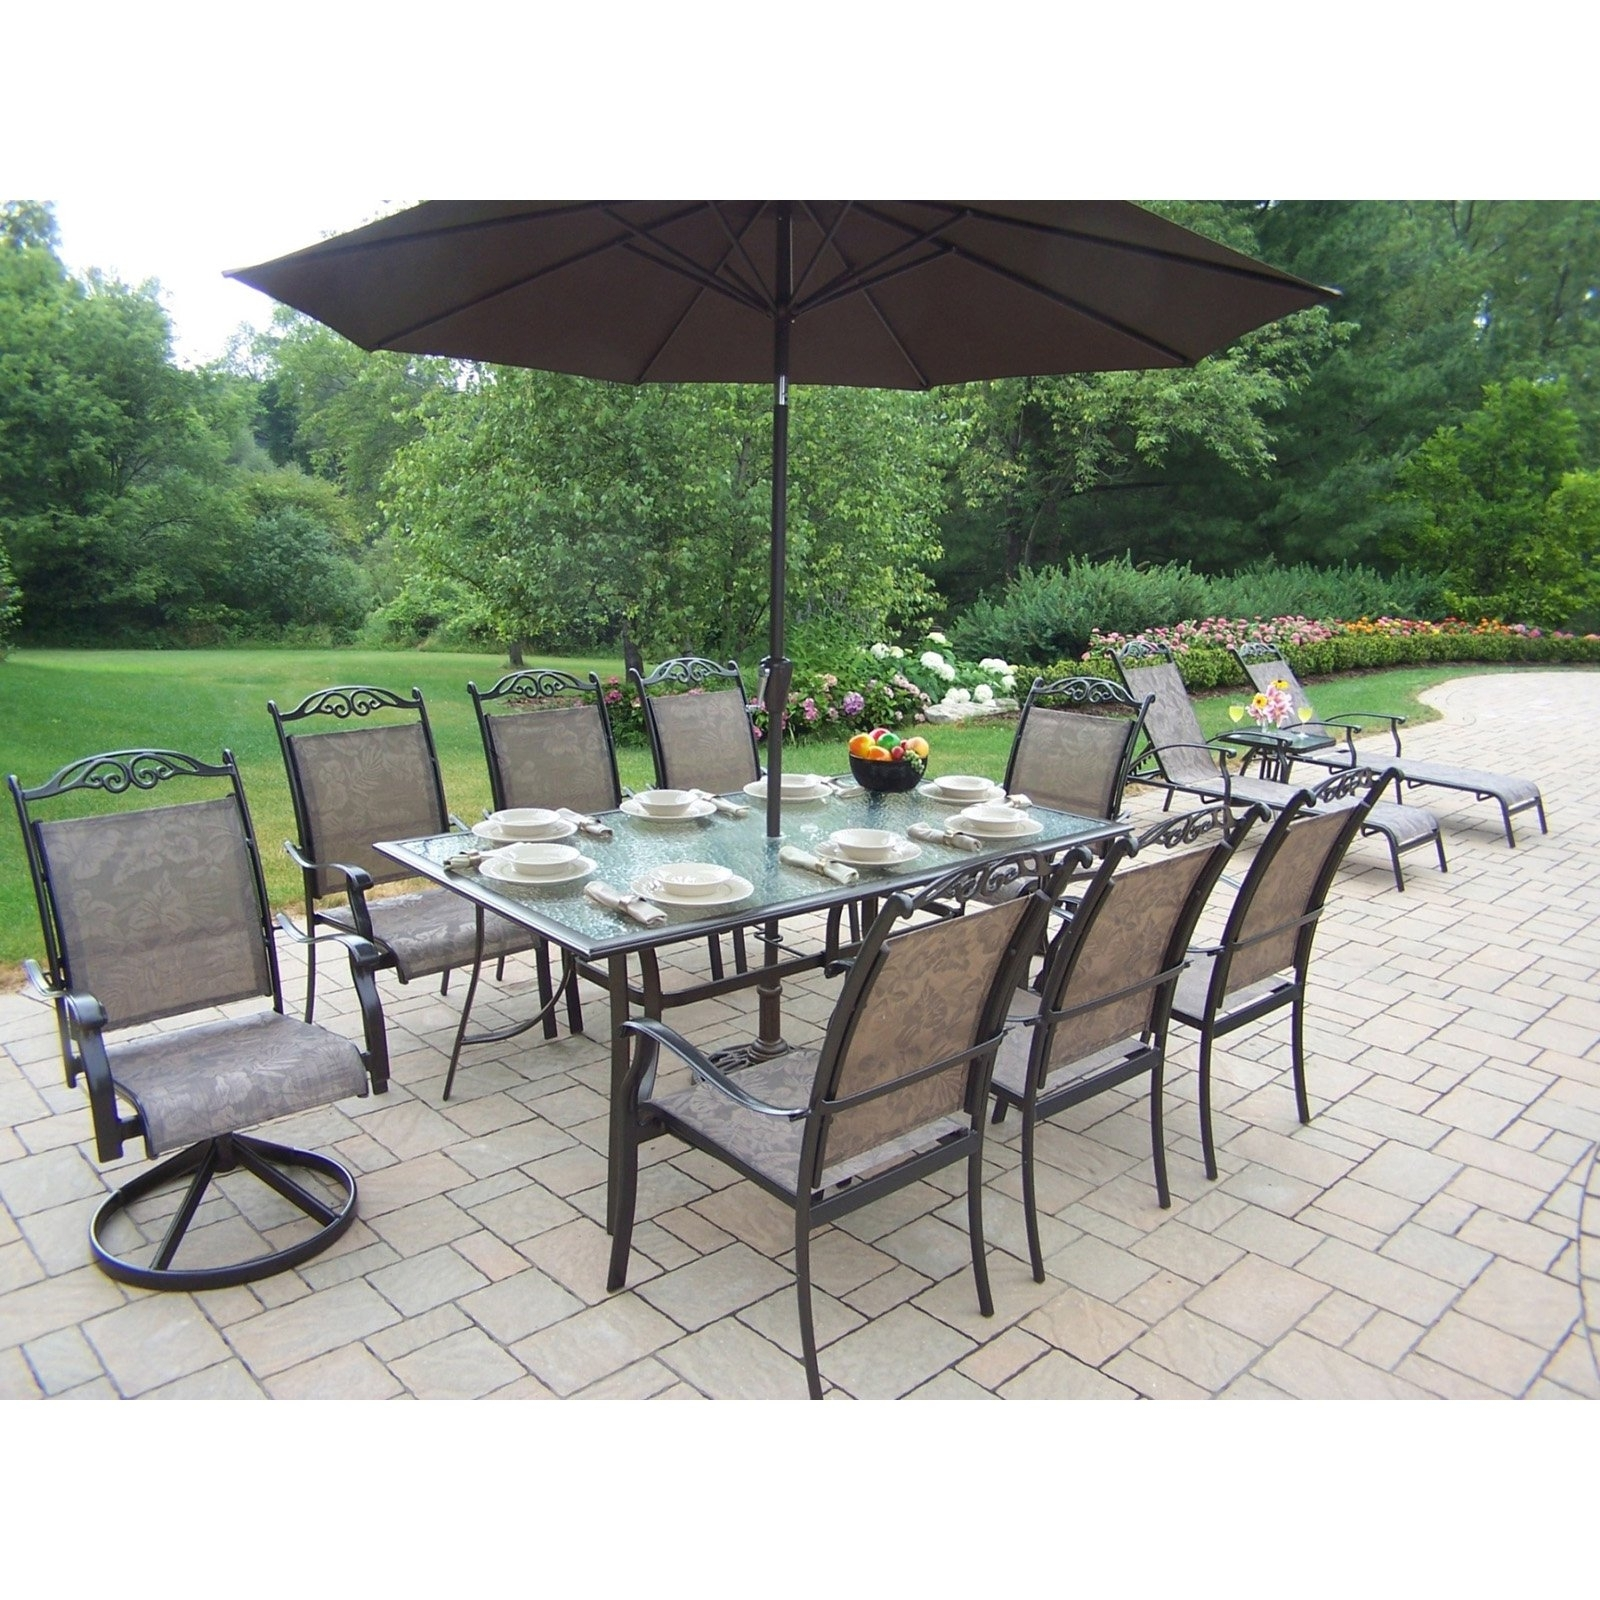 Patio Table Sets With Umbrellas Within Well Known Patio Furniture Walmart Patio Furniture Sets Patio Dining Luxury (View 3 of 20)